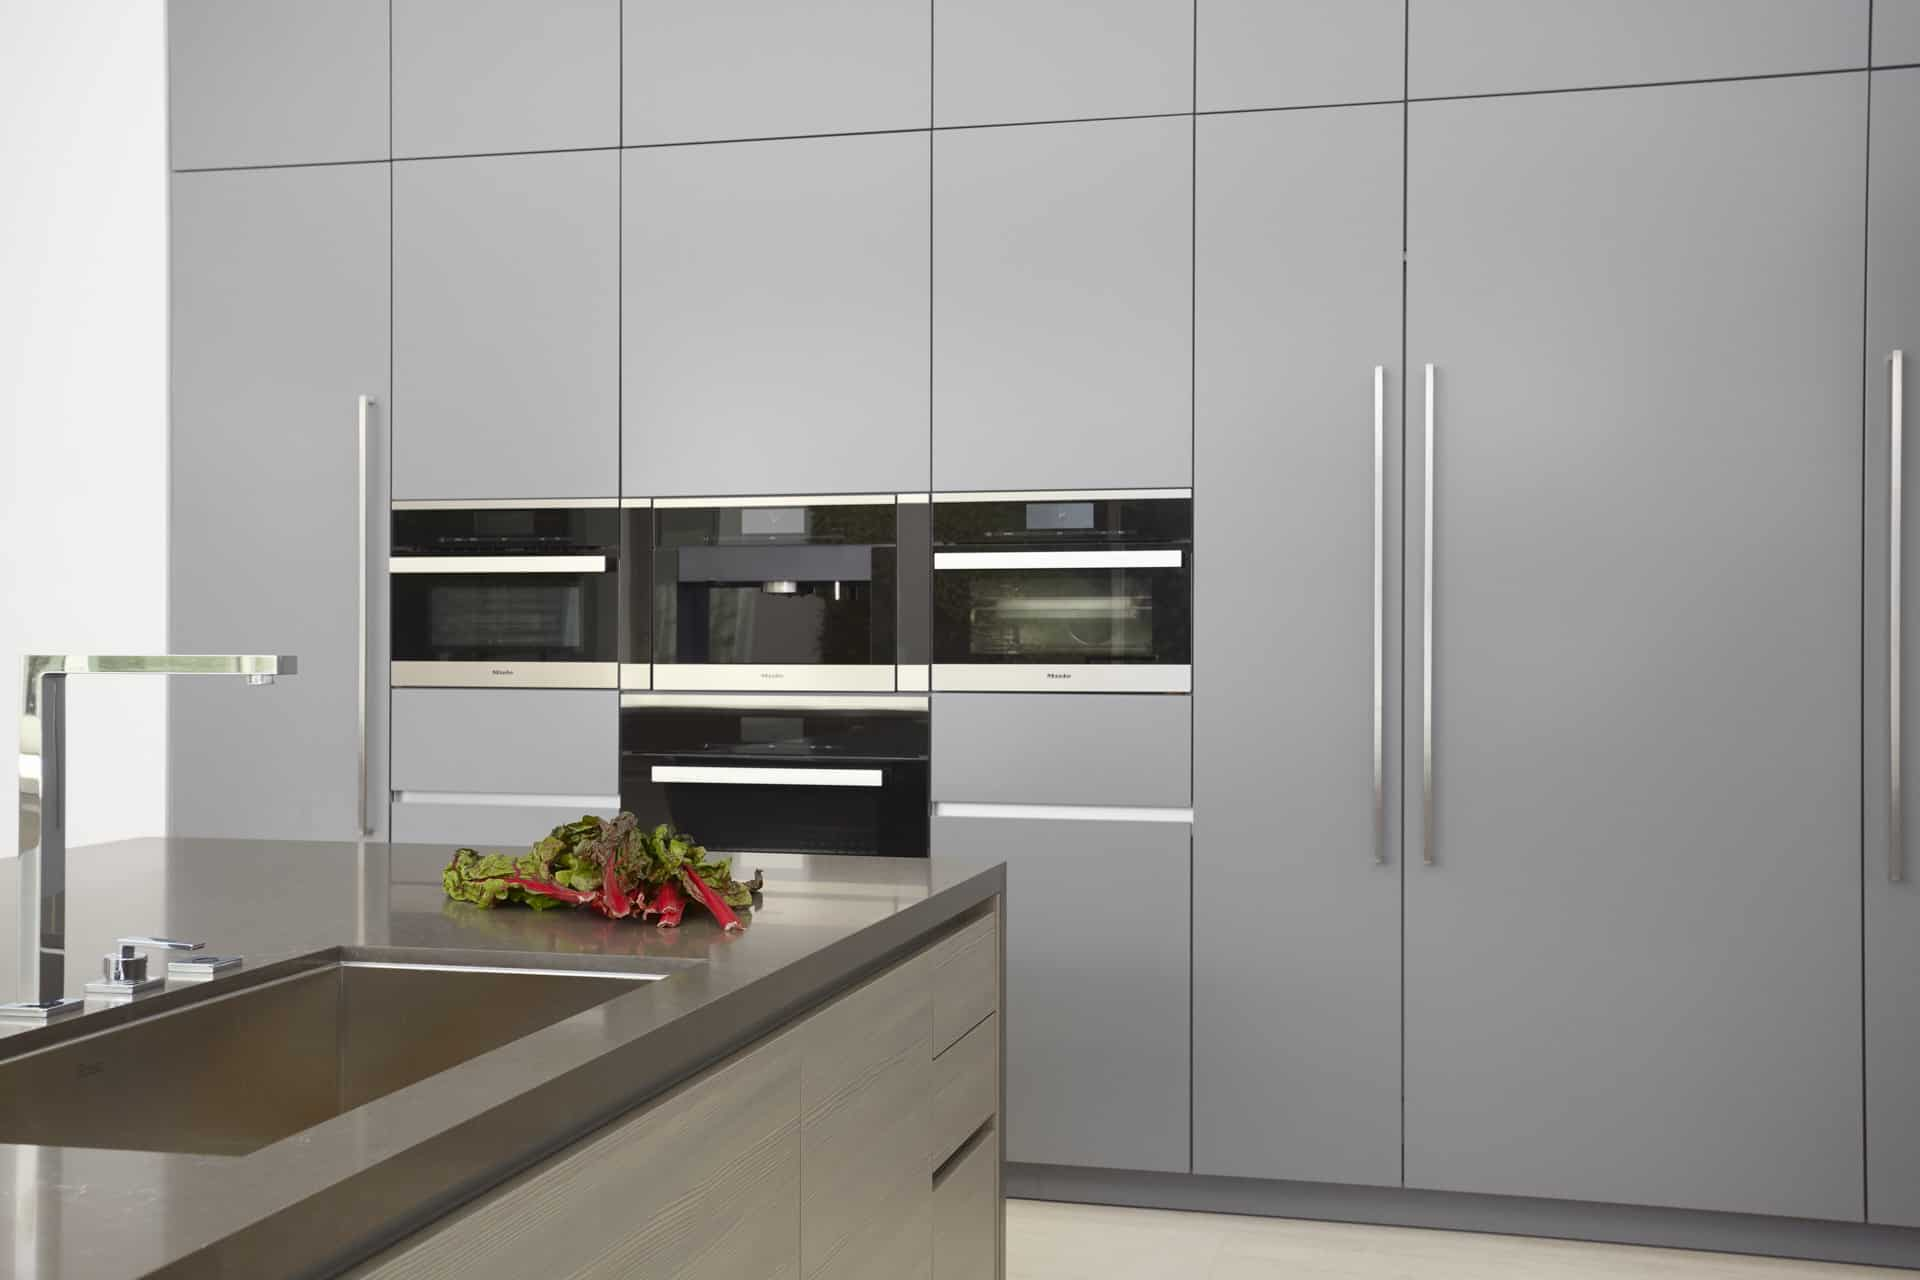 Main kitchen's luxury Miele kitchen appliances and integrated refrigerator freezer